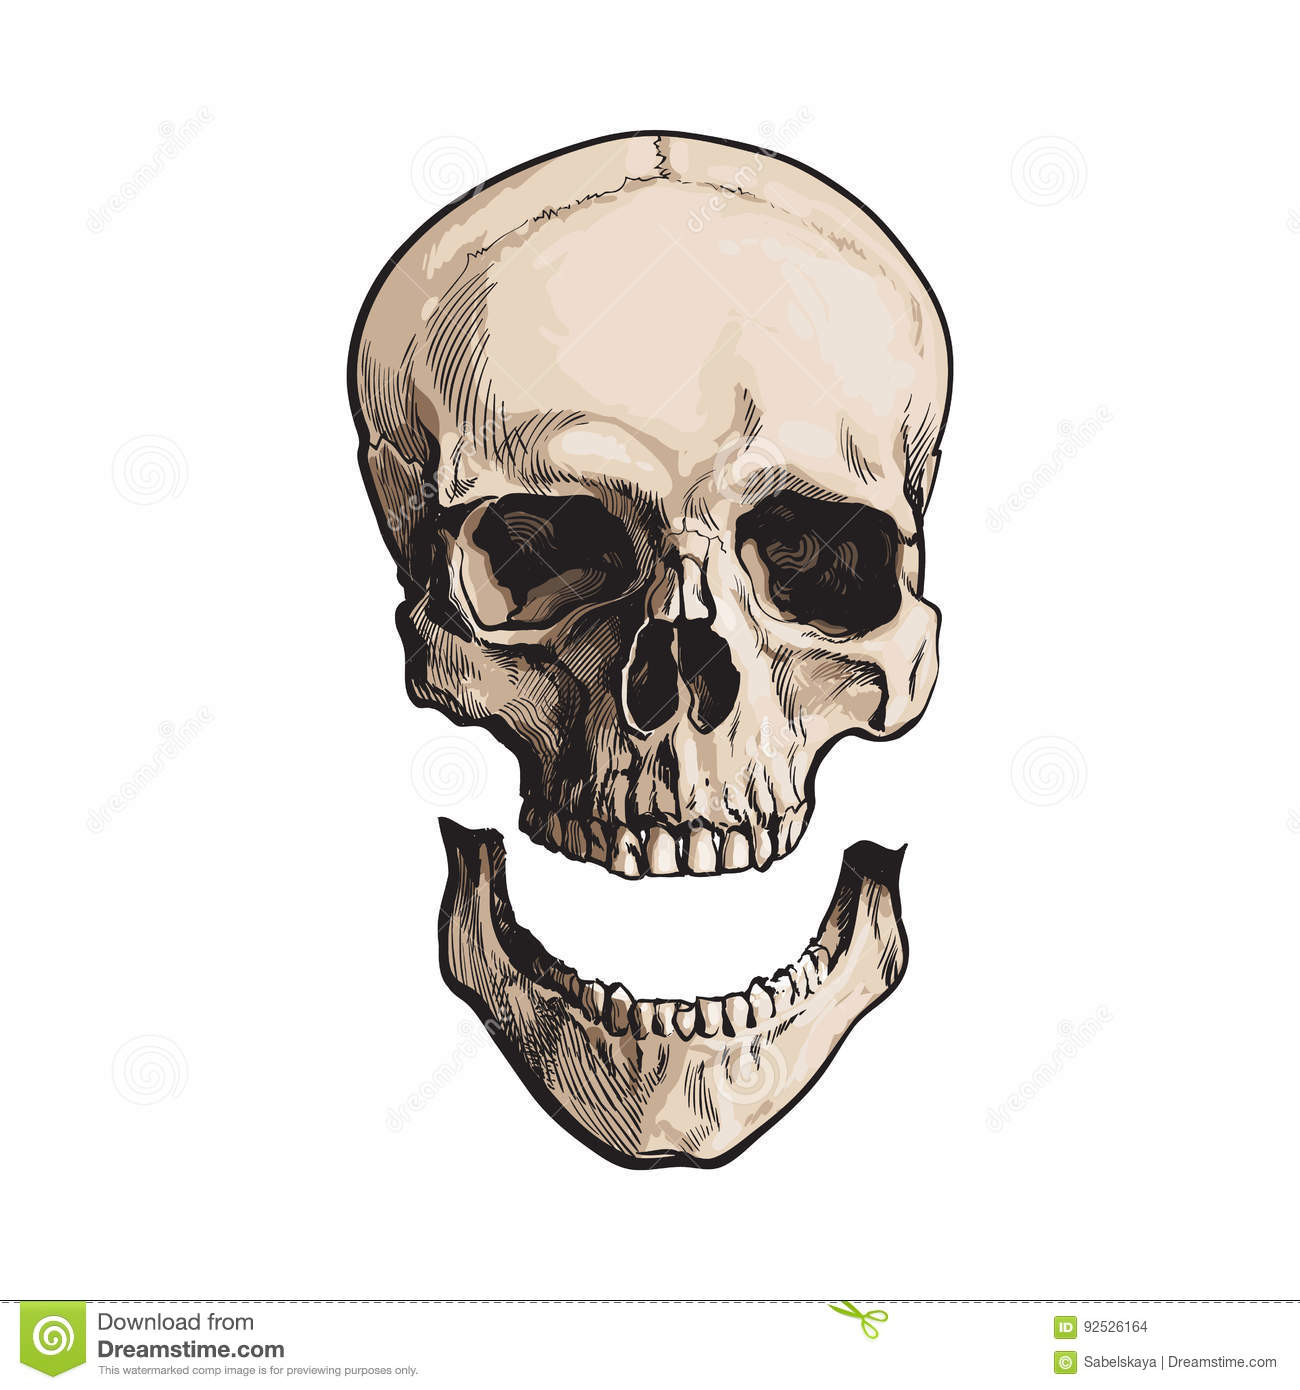 Hand Drawn Anatomical Human Skull With Separated Lower Jaw, Jawbone ...